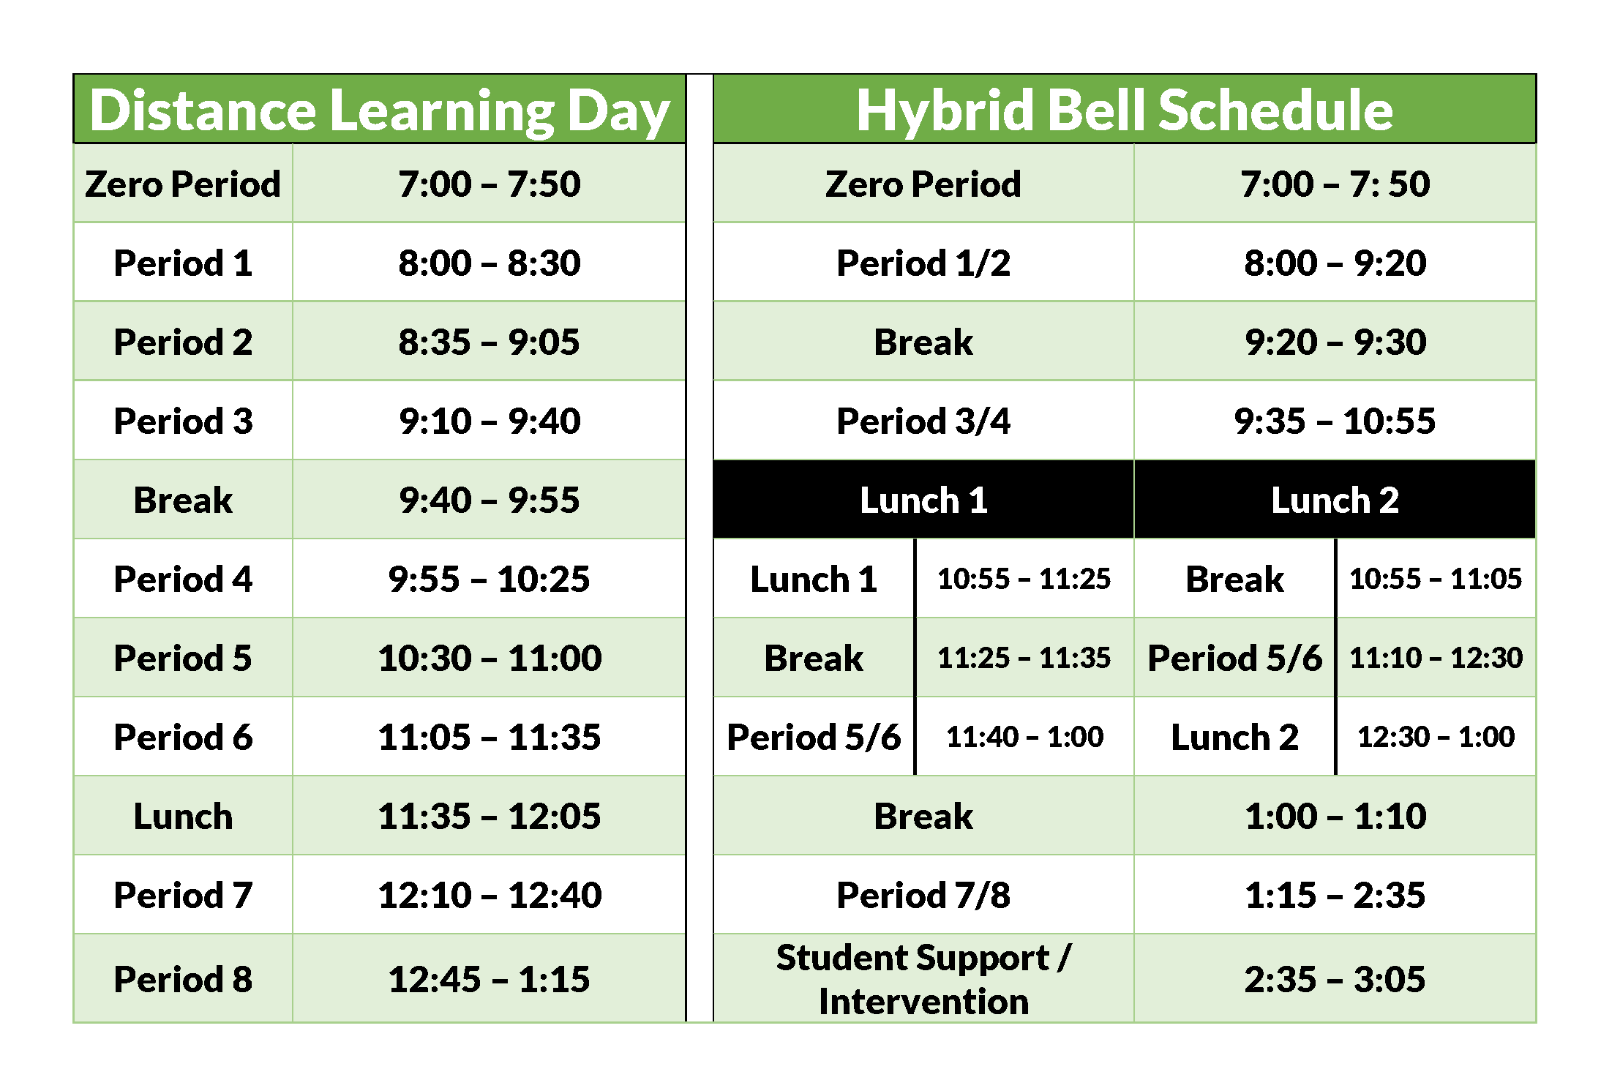 Distance Learning Day, Hybrid Bell Schedule